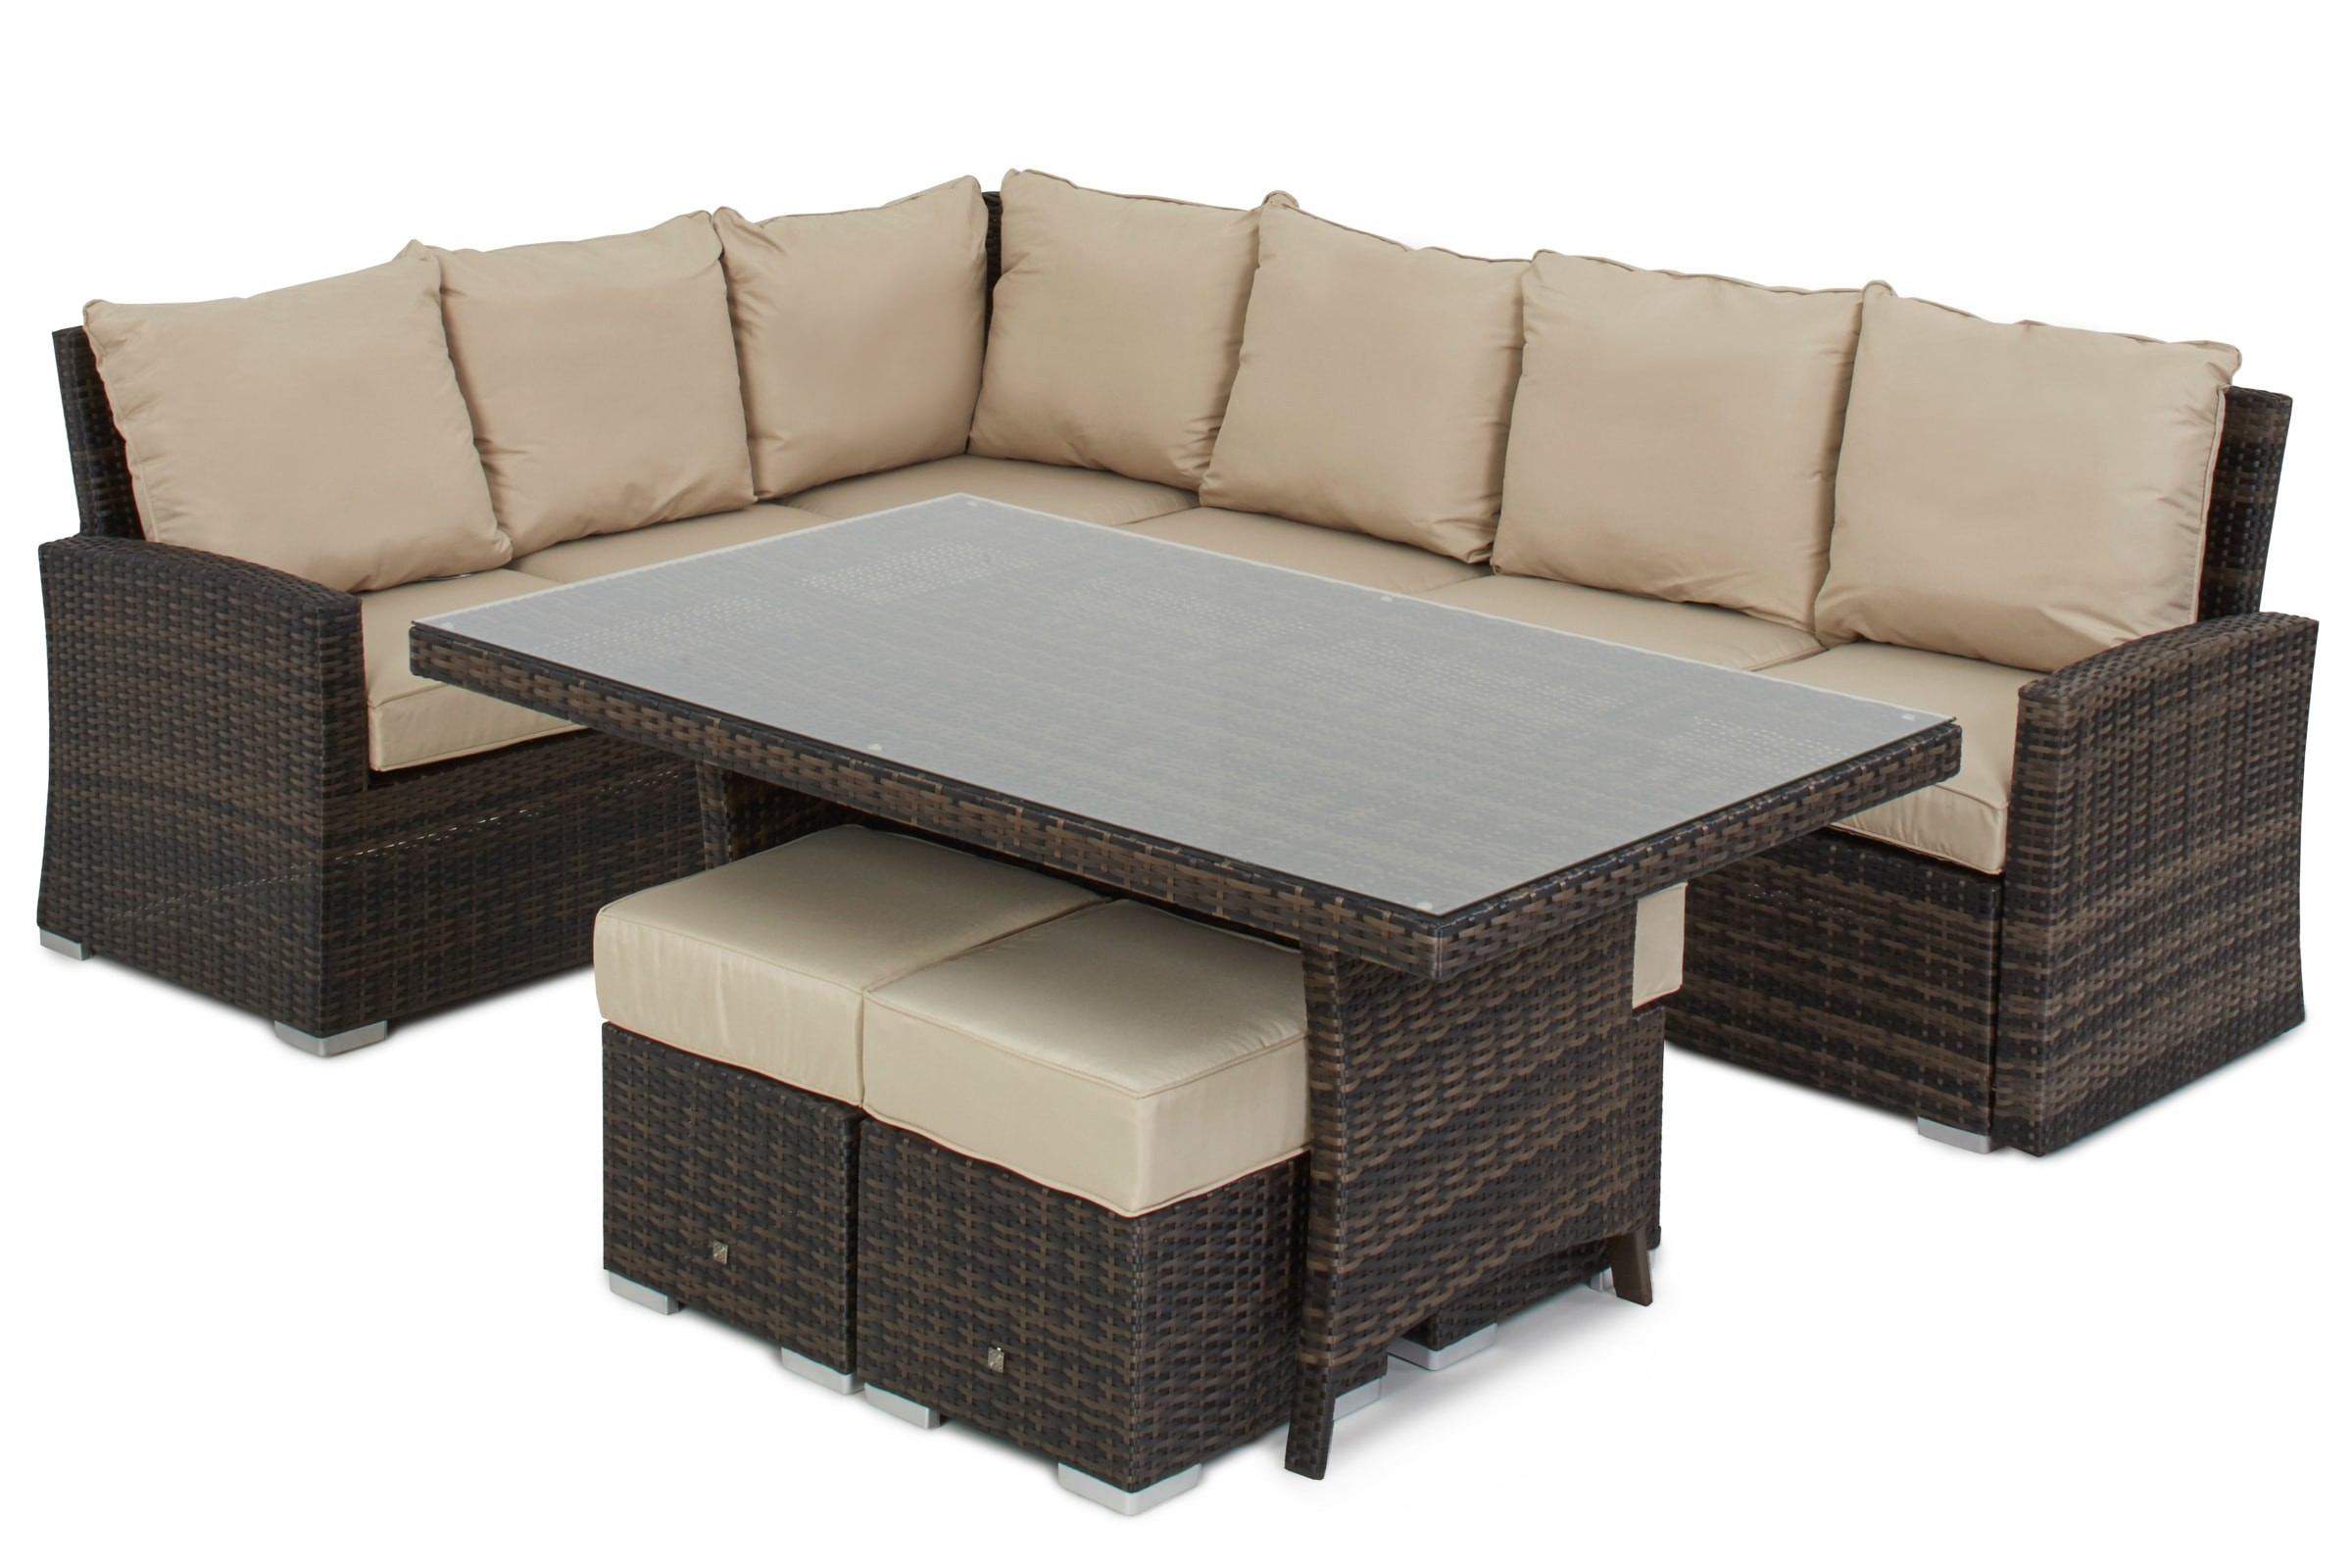 Maze Rattan Kingston garden Sofa Dining set | Rattan Furniture Fairy